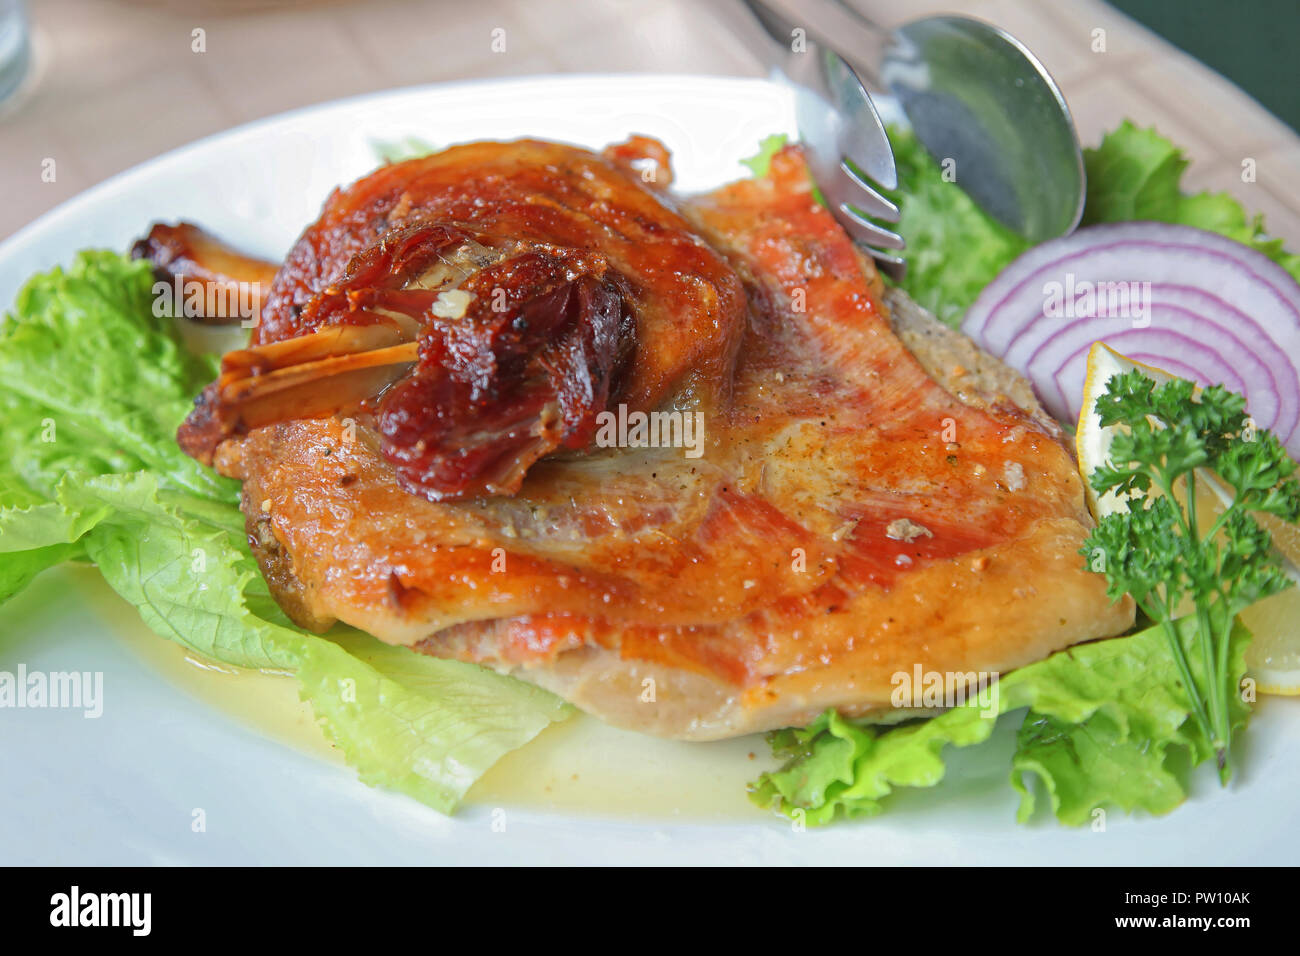 Lamb Shank Roast Served With Salad and Onion - Stock Image